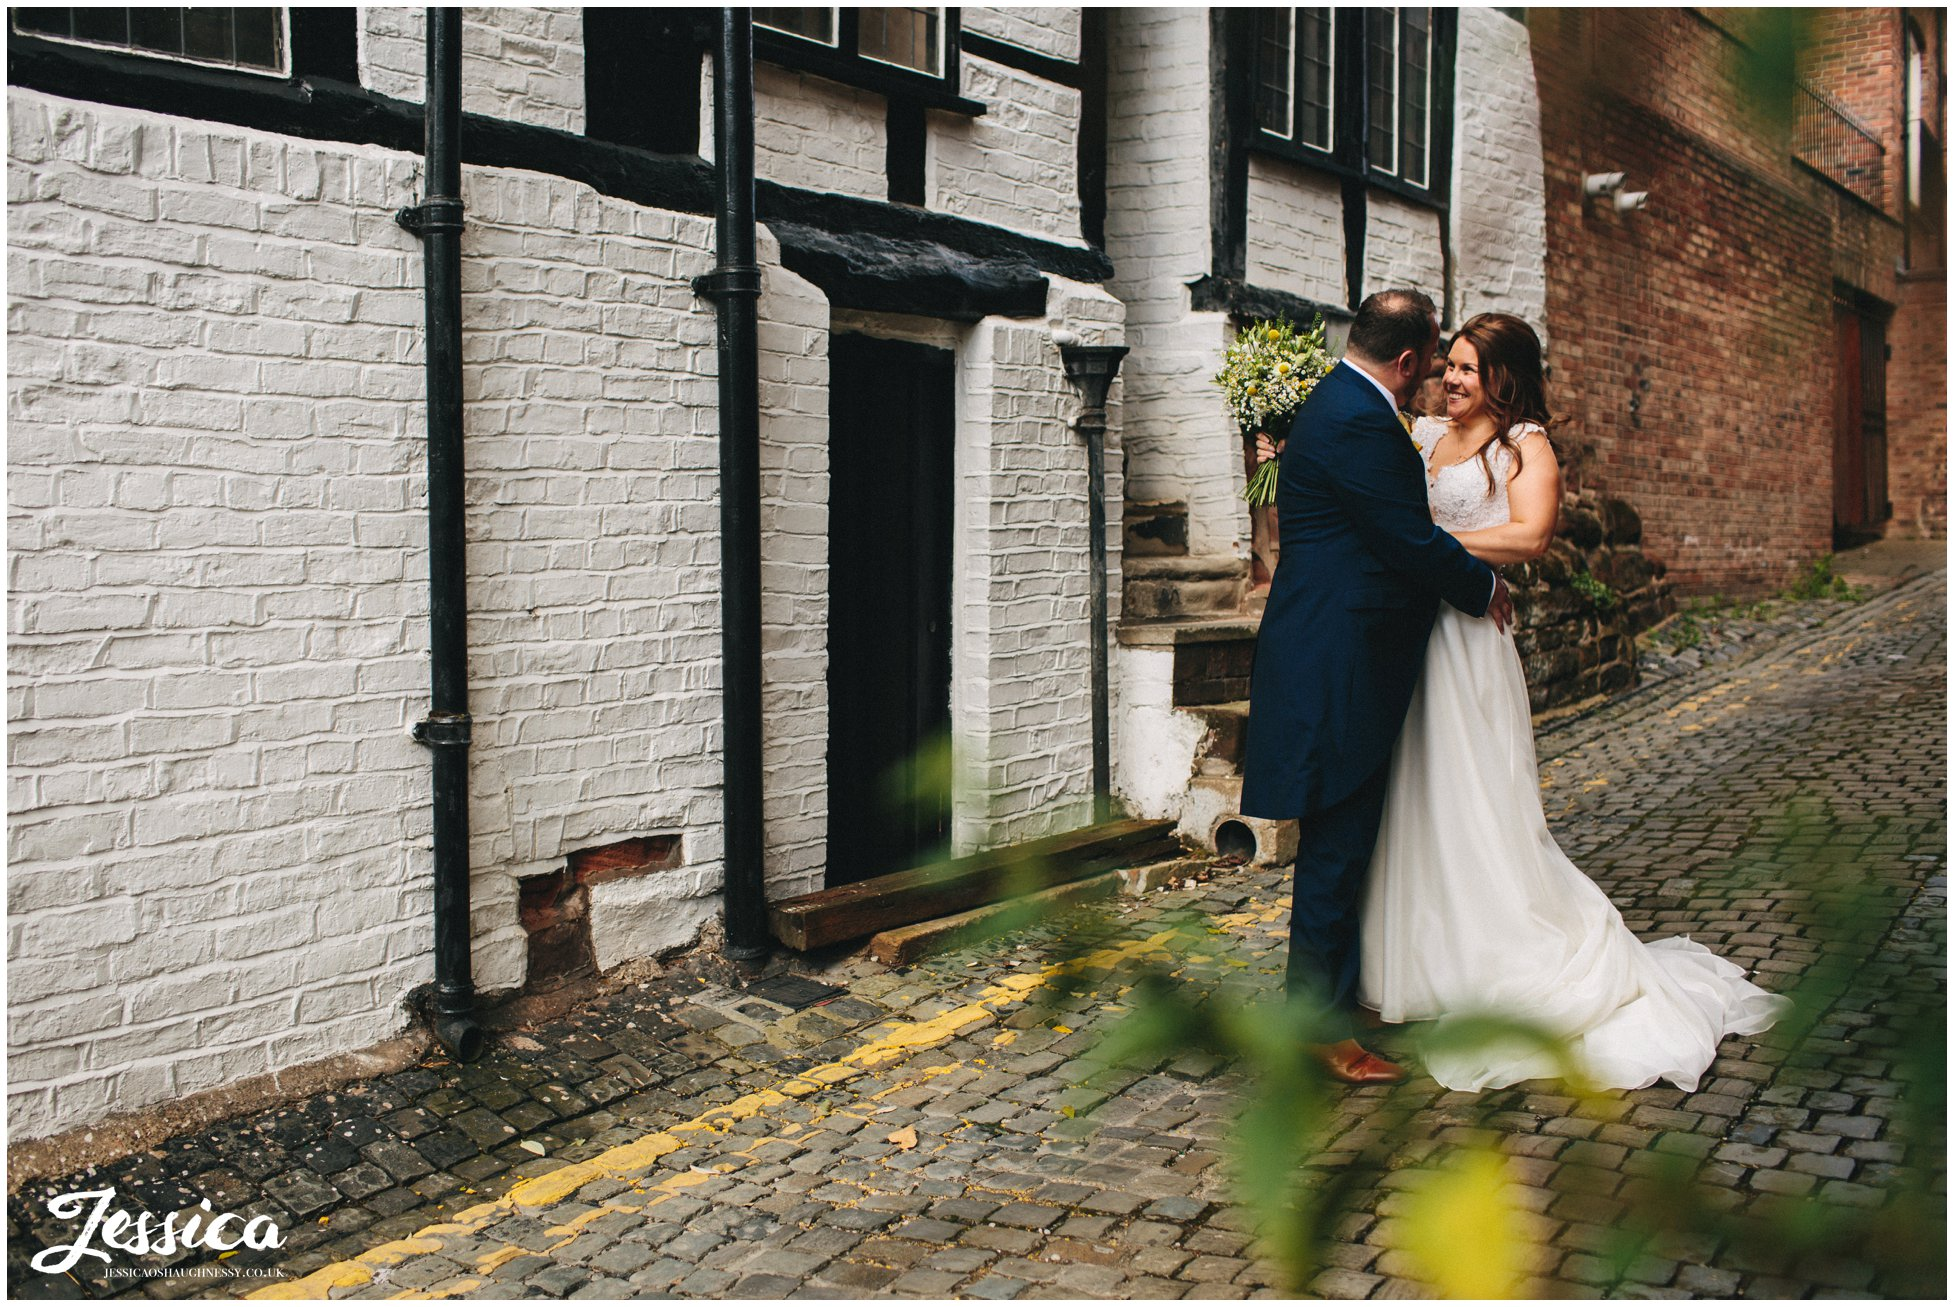 newlywed's kiss outside Oddfellows, their chester wedding venue